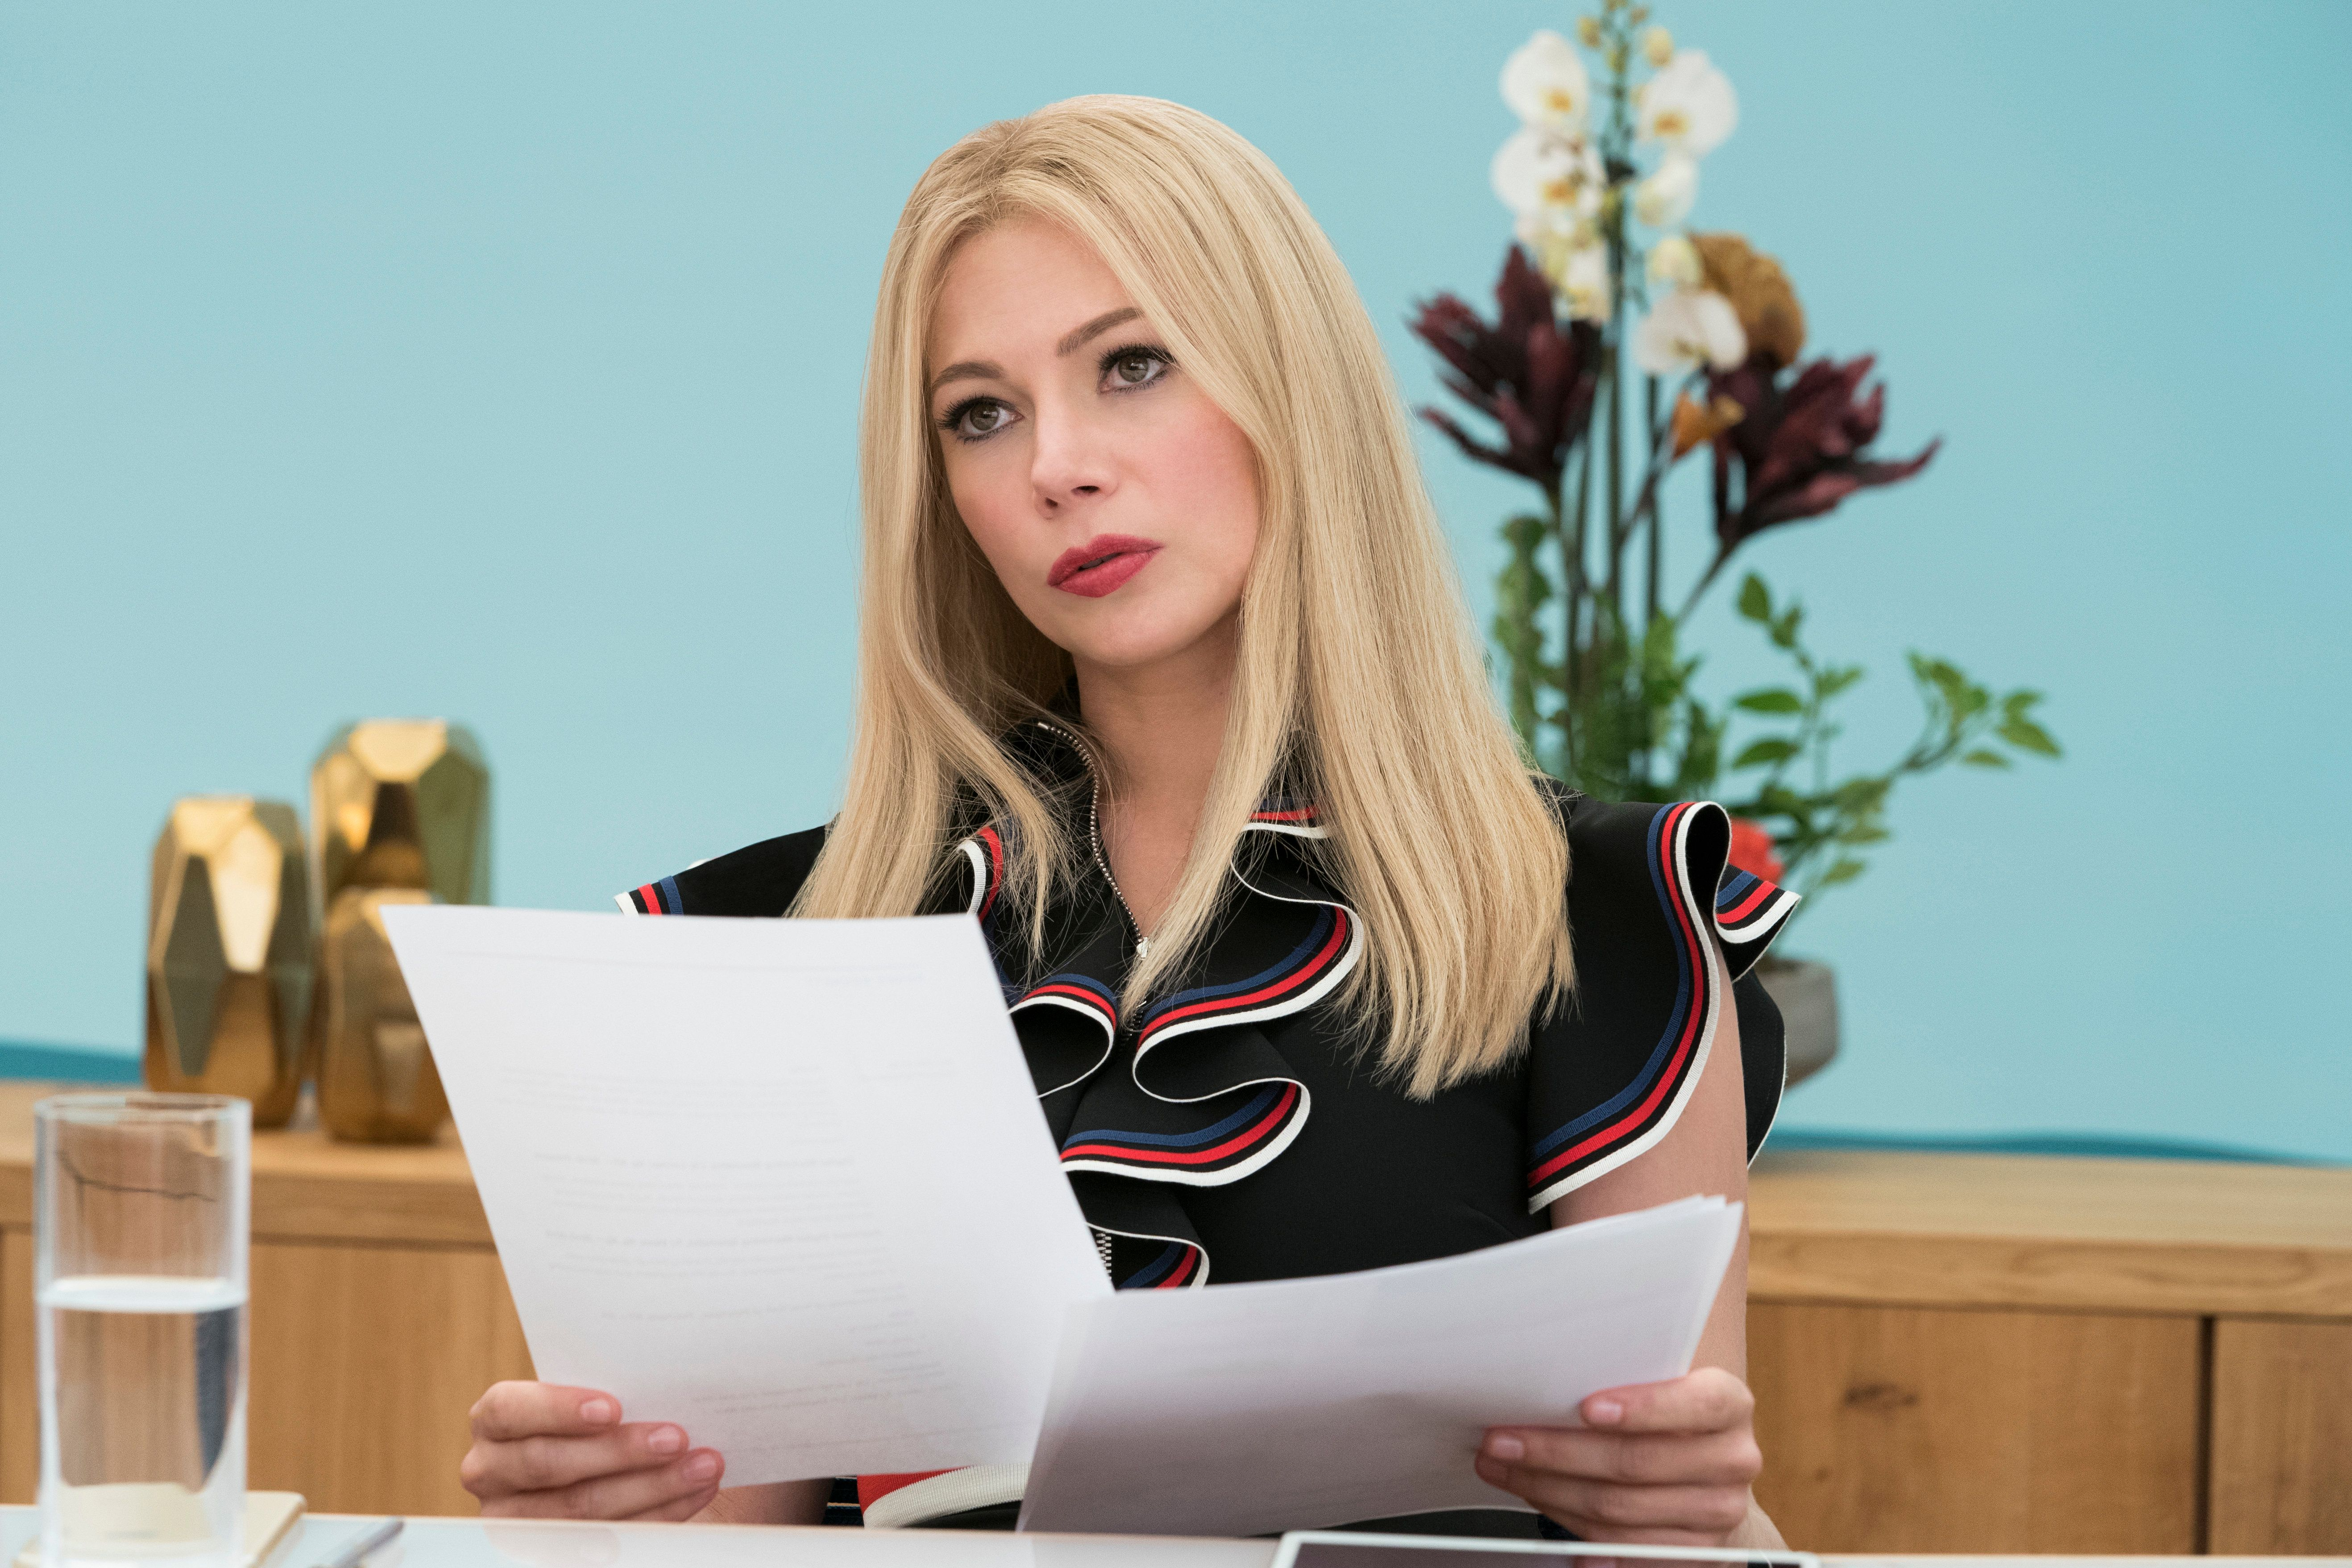 Michelle Williams stars in I FEEL PRETTY